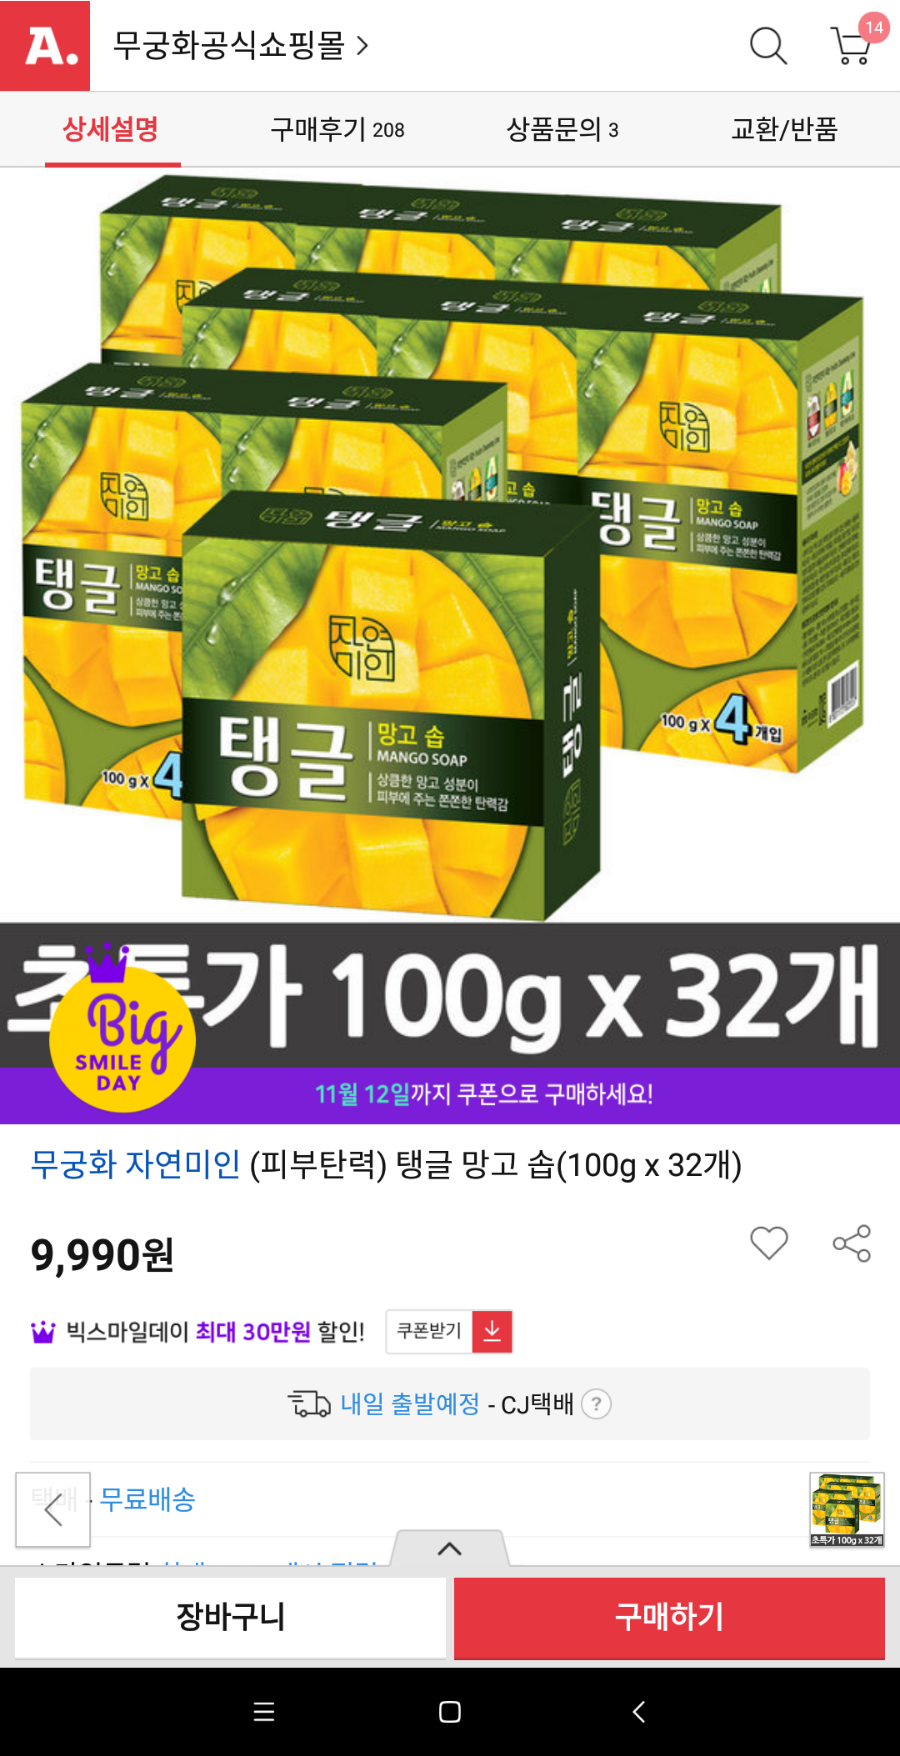 Screenshot_2019-11-05-23-04-52-264_com.ebay.kr.auction~01.png